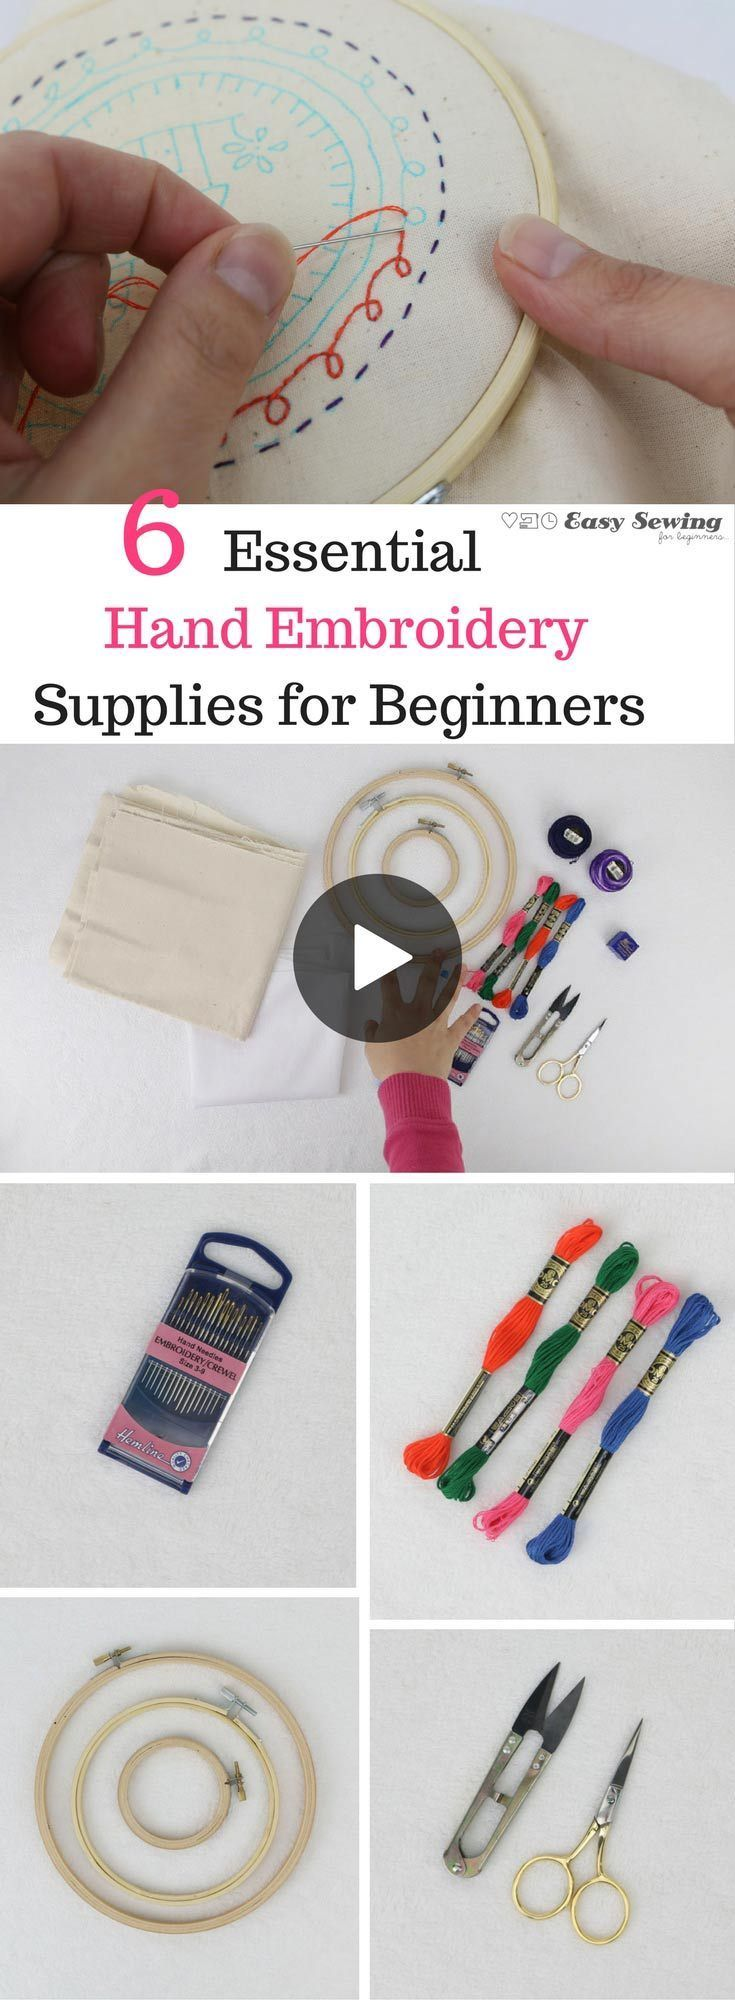 Essential hand embroidery supplies for beginners - hand embroidery for beginners series